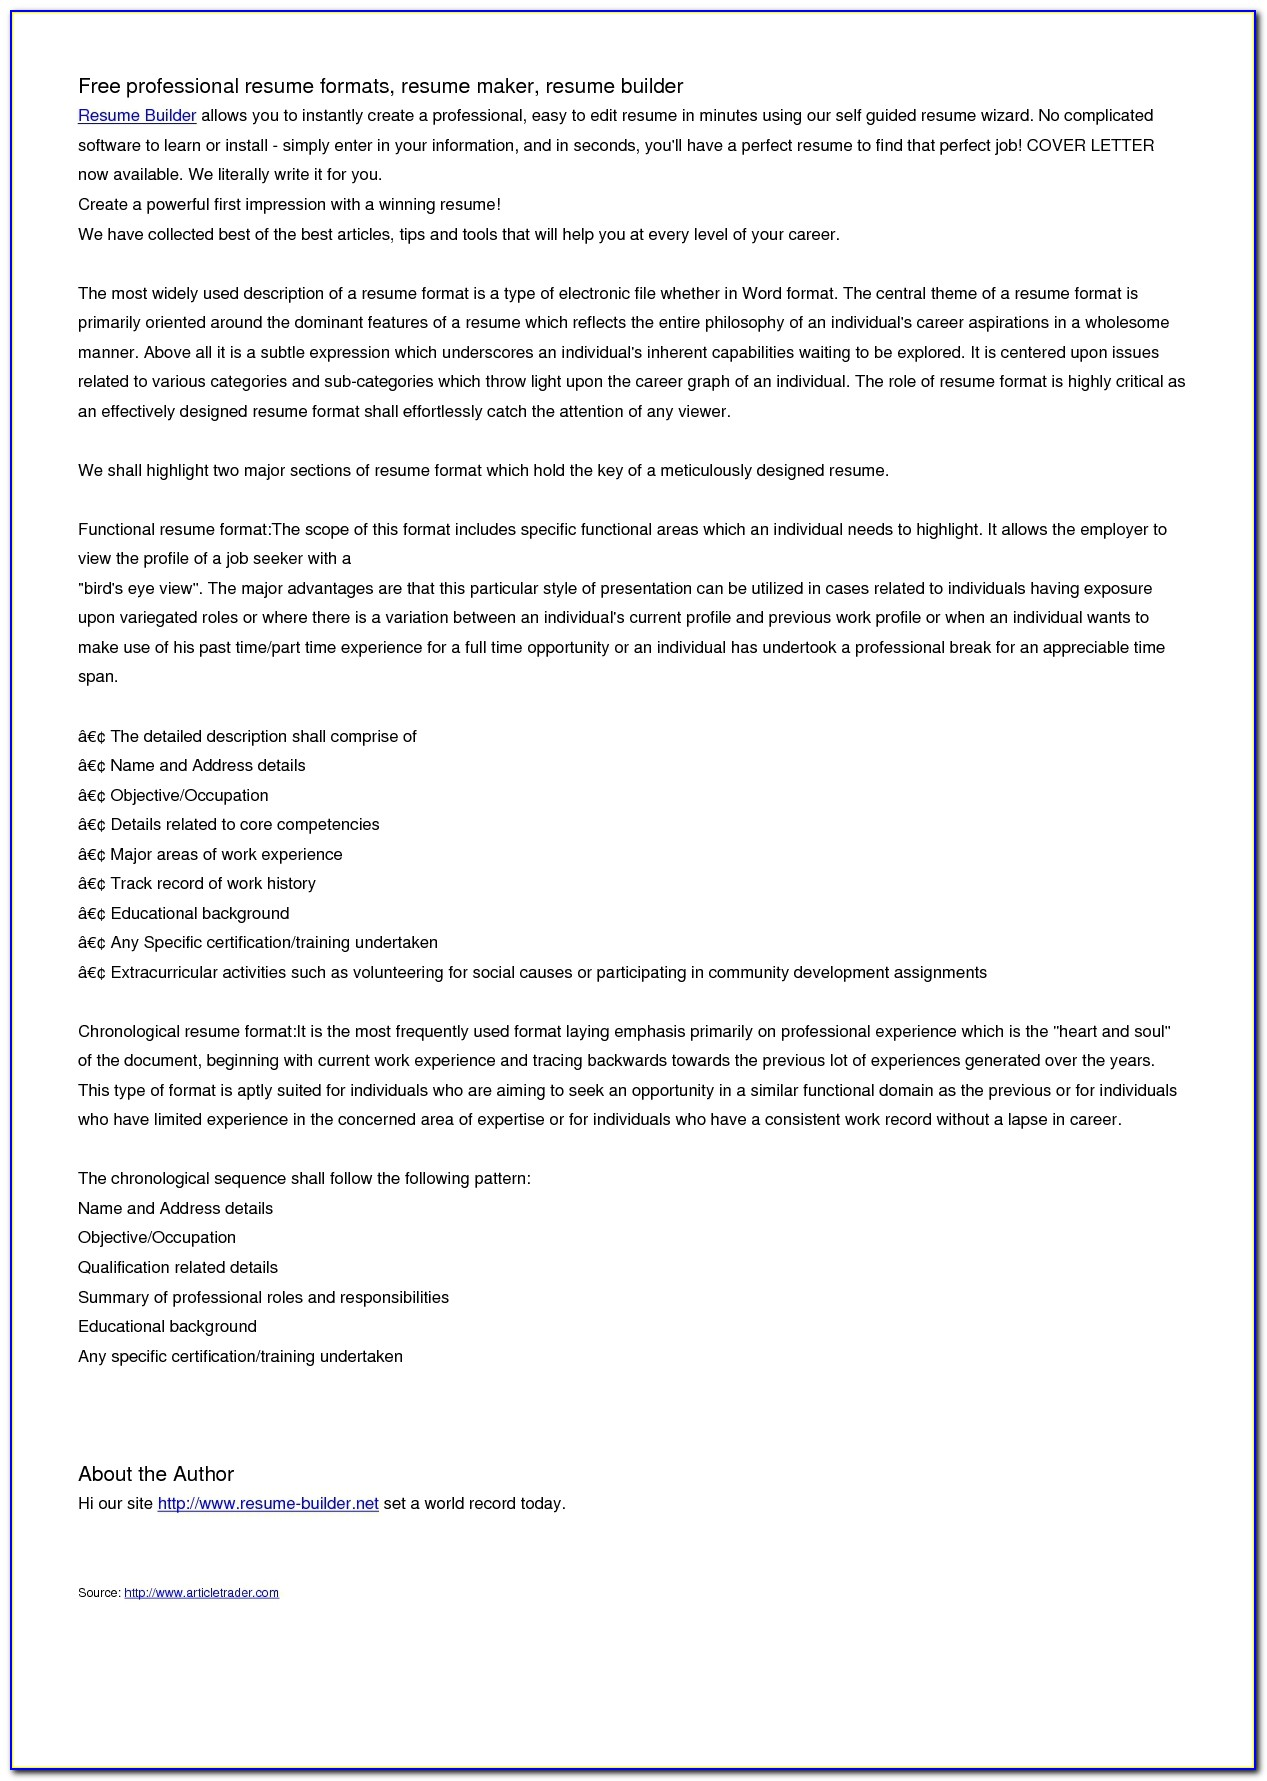 Healthcare Resume Builder Resumes Template Free Resume Templates